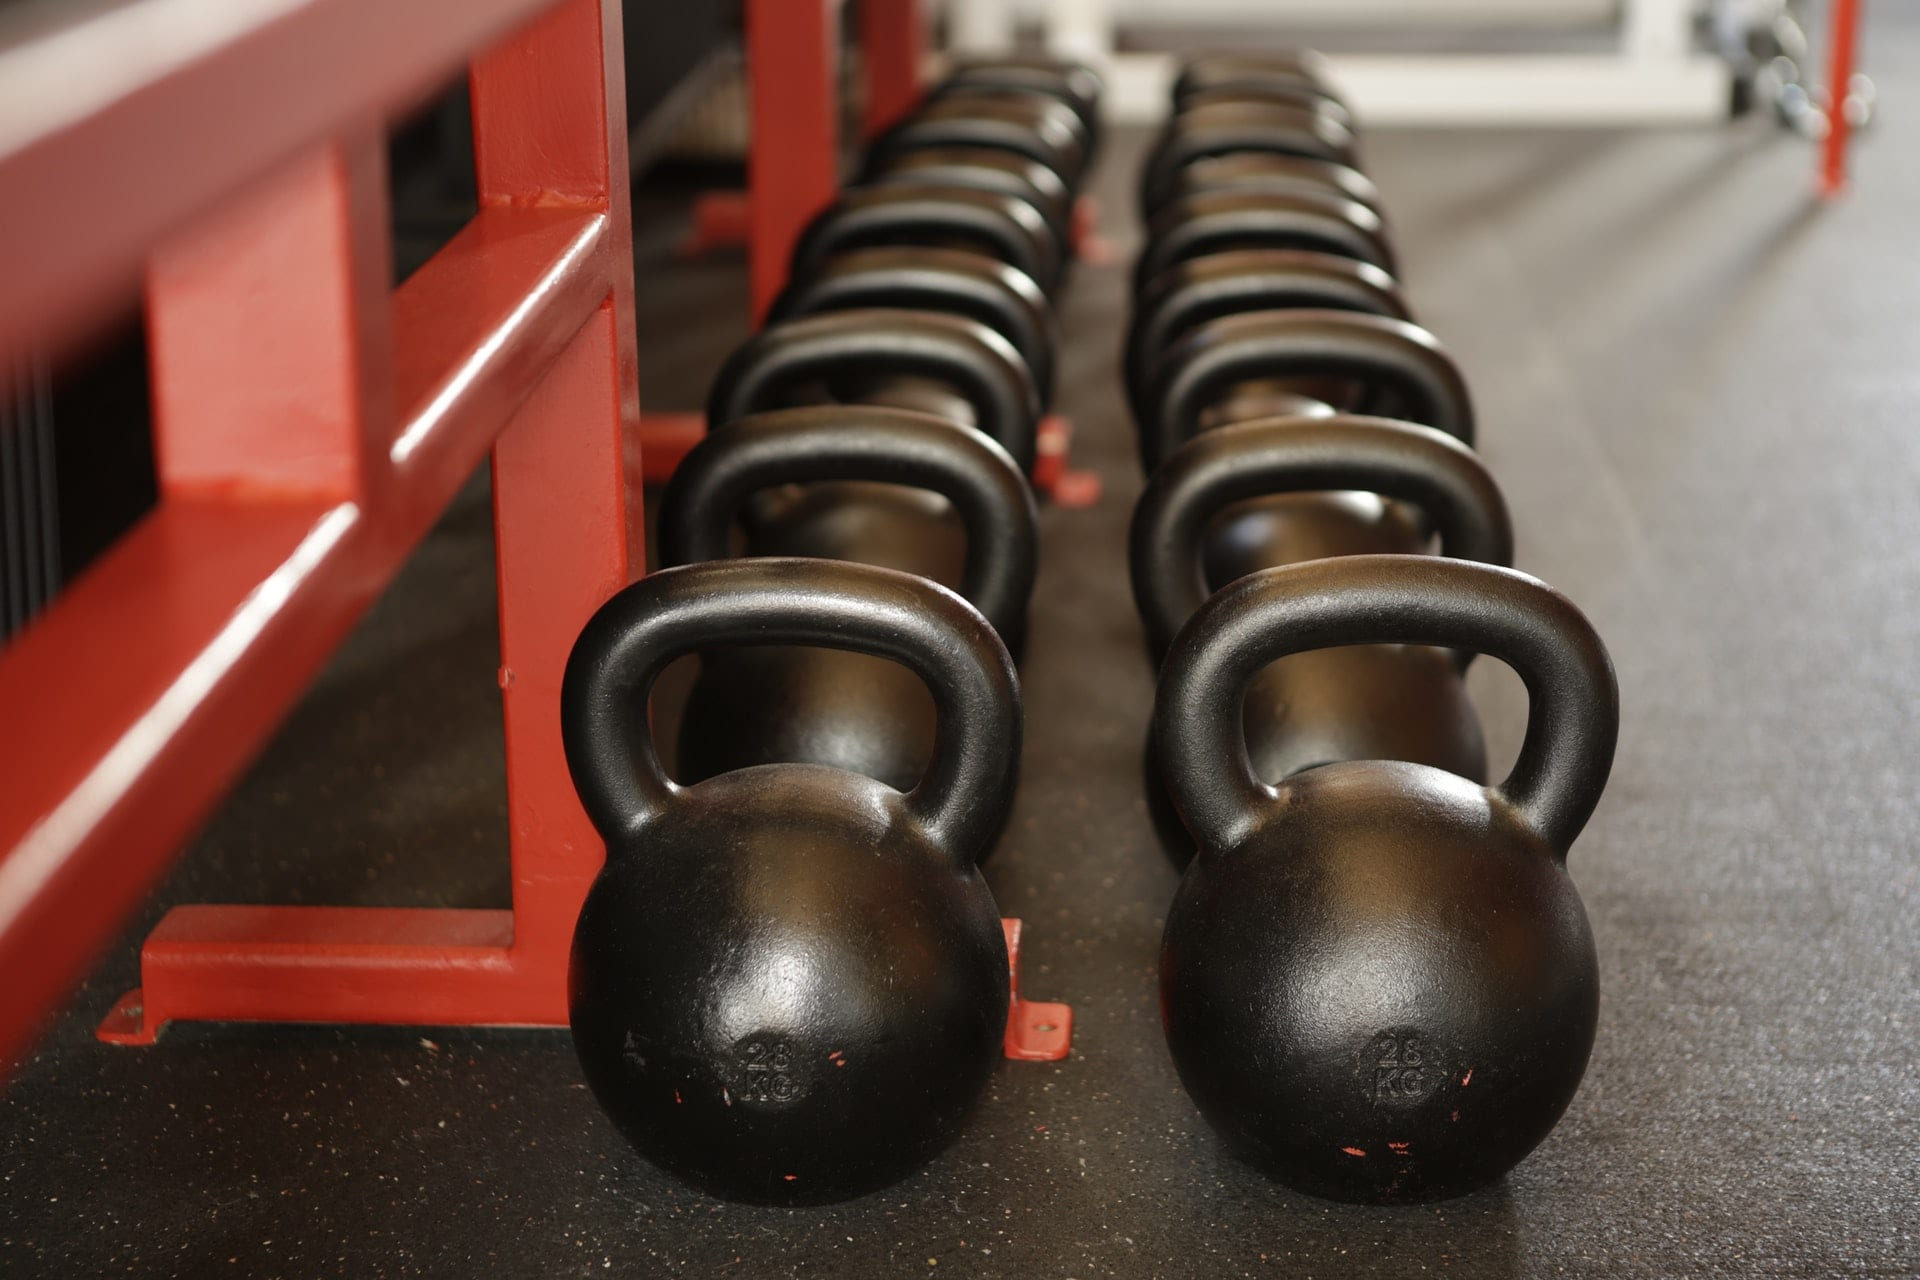 A training program that pushes you often may not be the best idea.